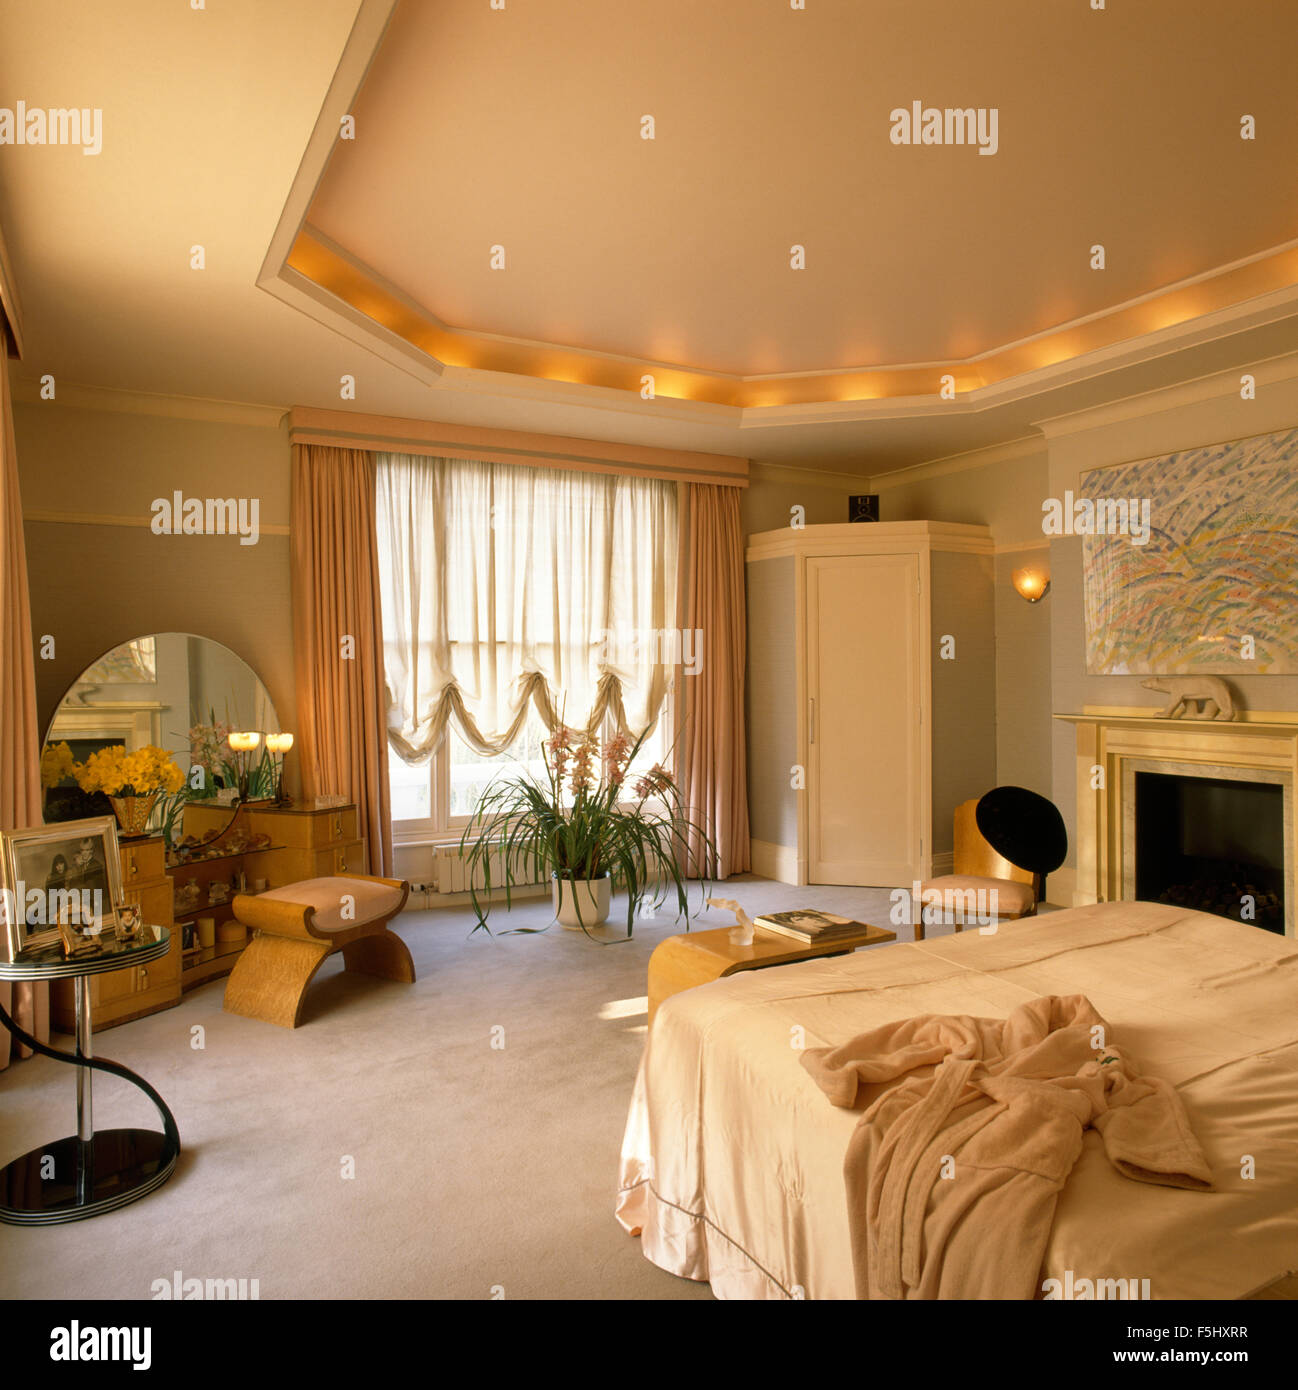 Recessed ceiling with lighting in thirties bedroom - Stock Image